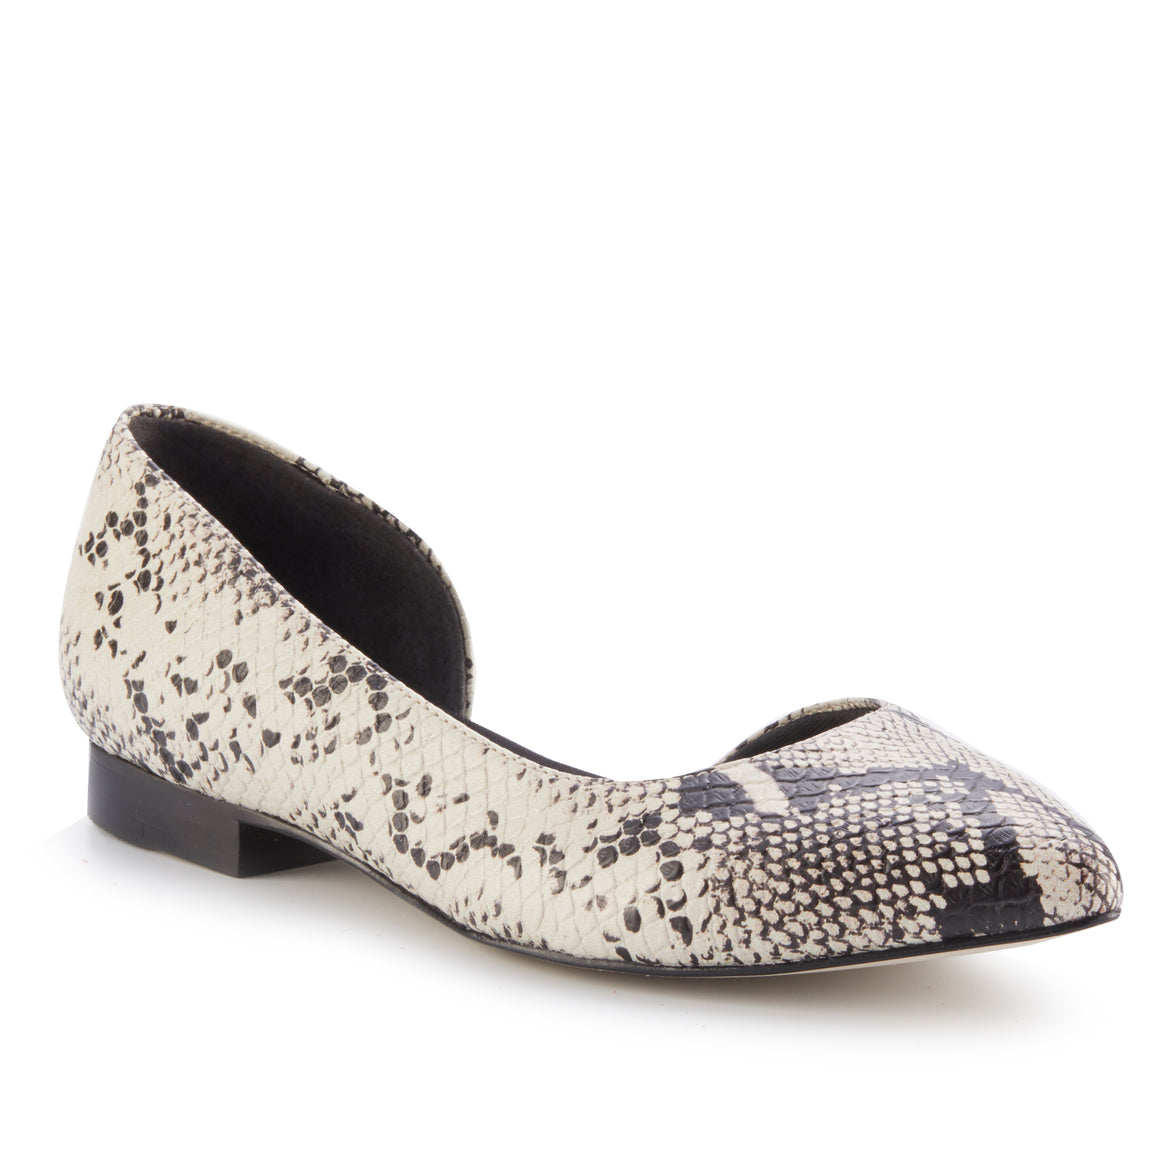 Women's Comfort Flat- Raya Pointed Toe Flat, Snakeskin Manmade Uppers